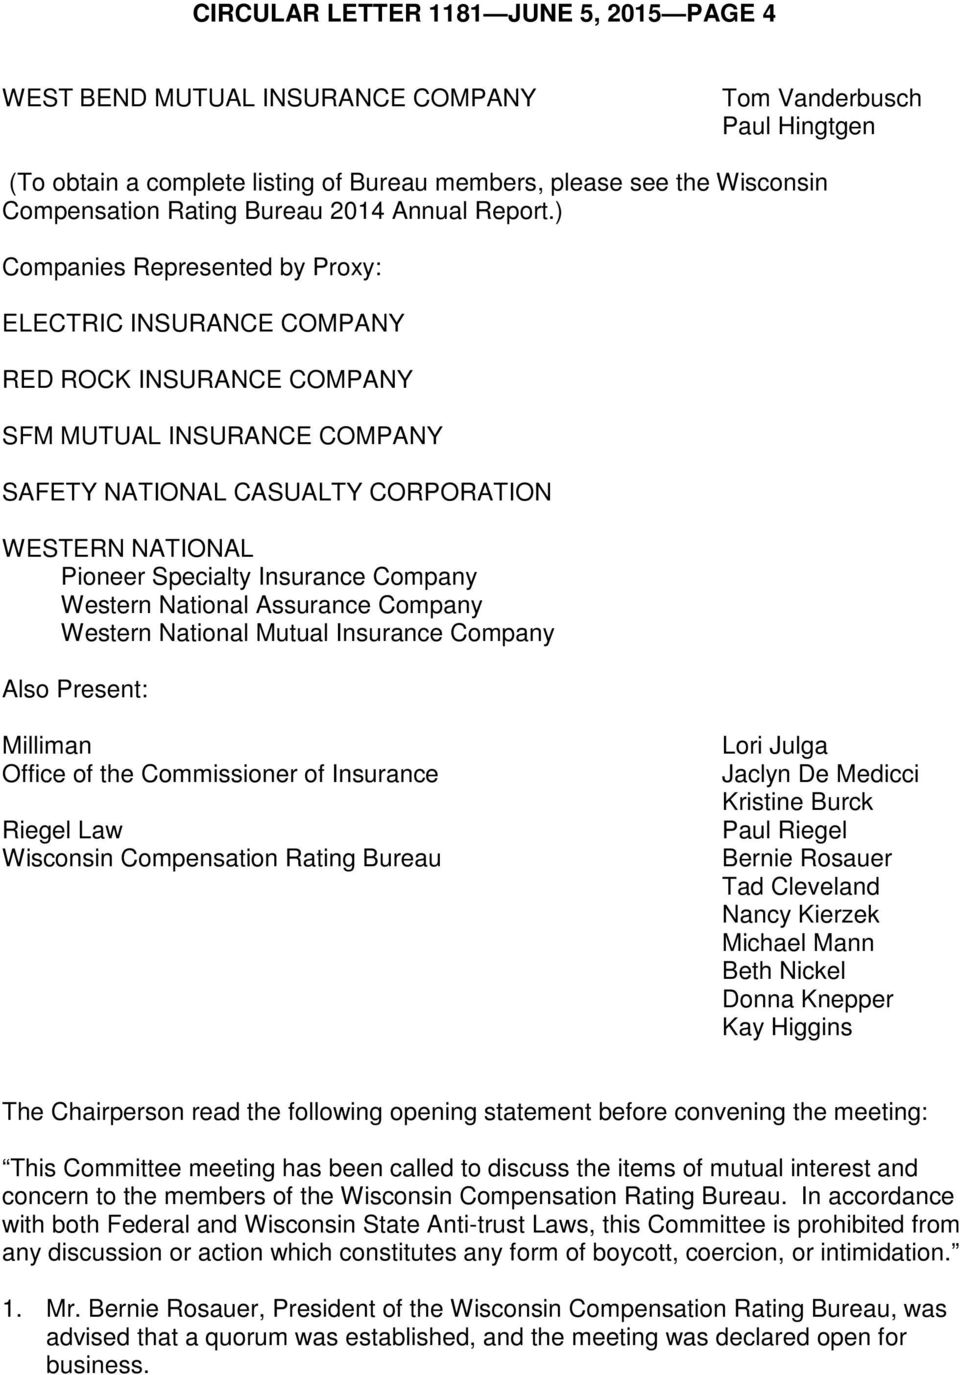 ) Companies Represented by Proxy: ELECTRIC INSURANCE COMPANY RED ROCK INSURANCE COMPANY SFM MUTUAL INSURANCE COMPANY SAFETY NATIONAL CASUALTY CORPORATION WESTERN NATIONAL Pioneer Specialty Insurance